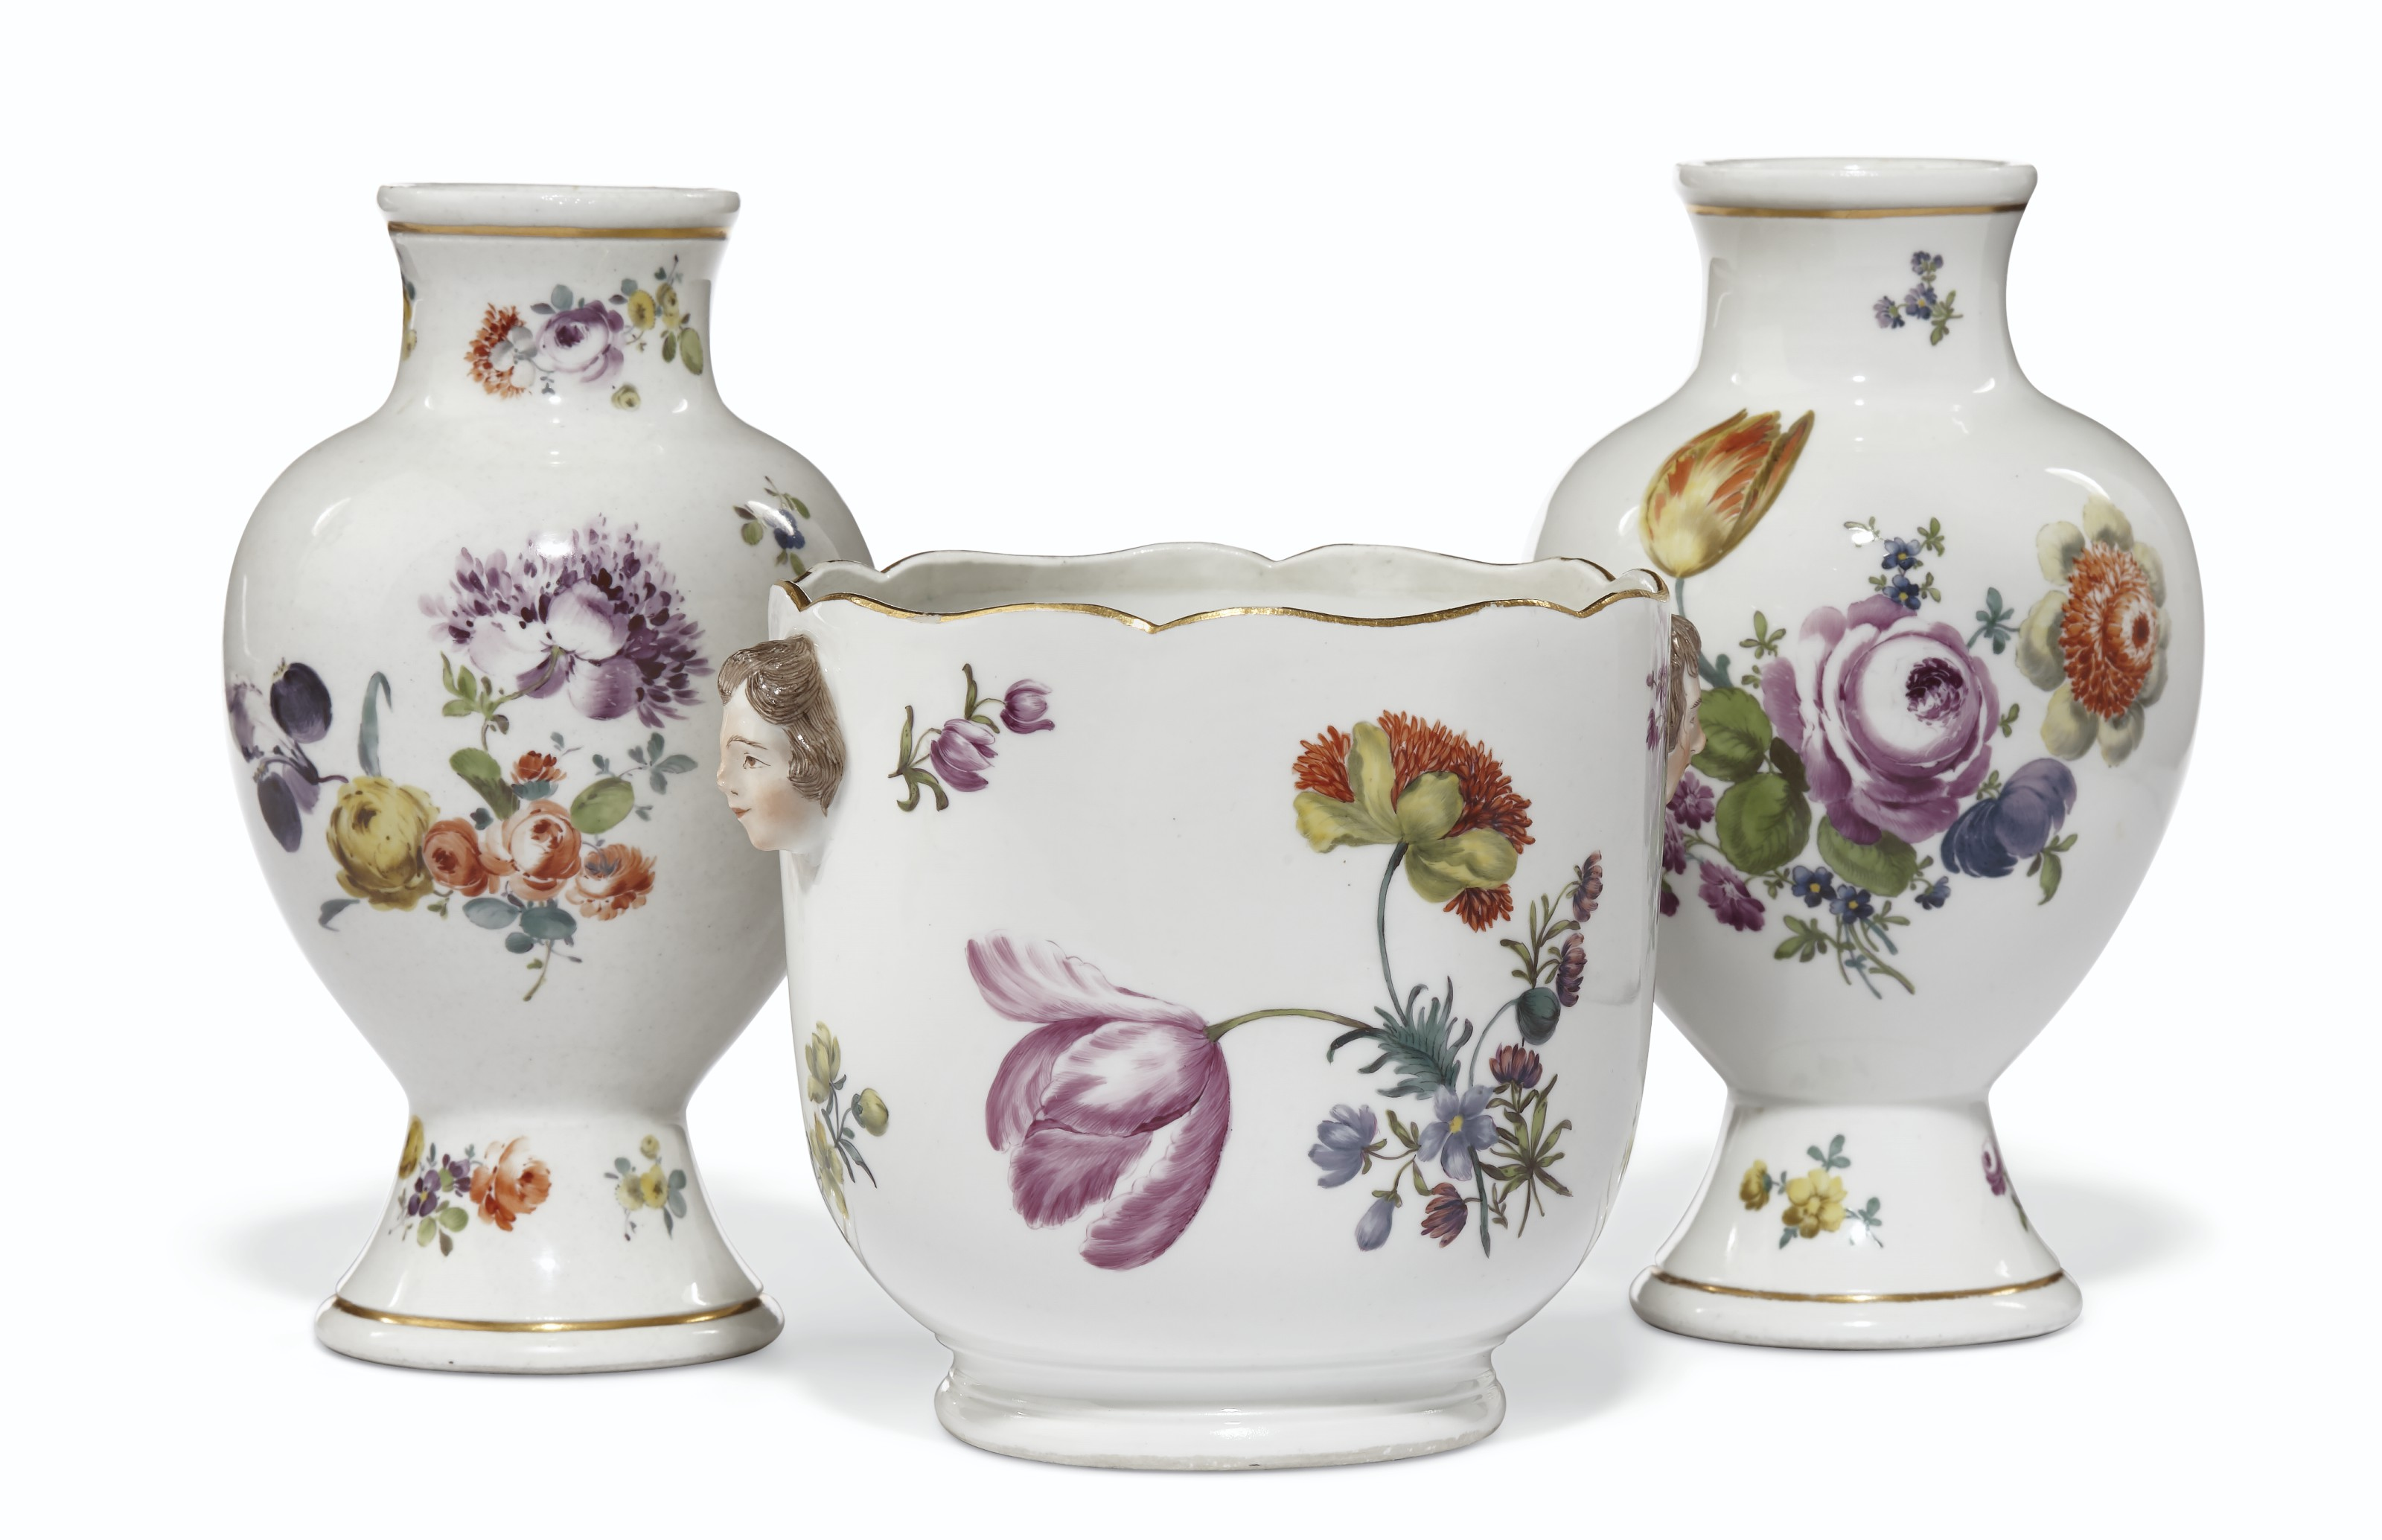 A PAIR OF MEISSEN PORCELAIN VASES AND A COOLER